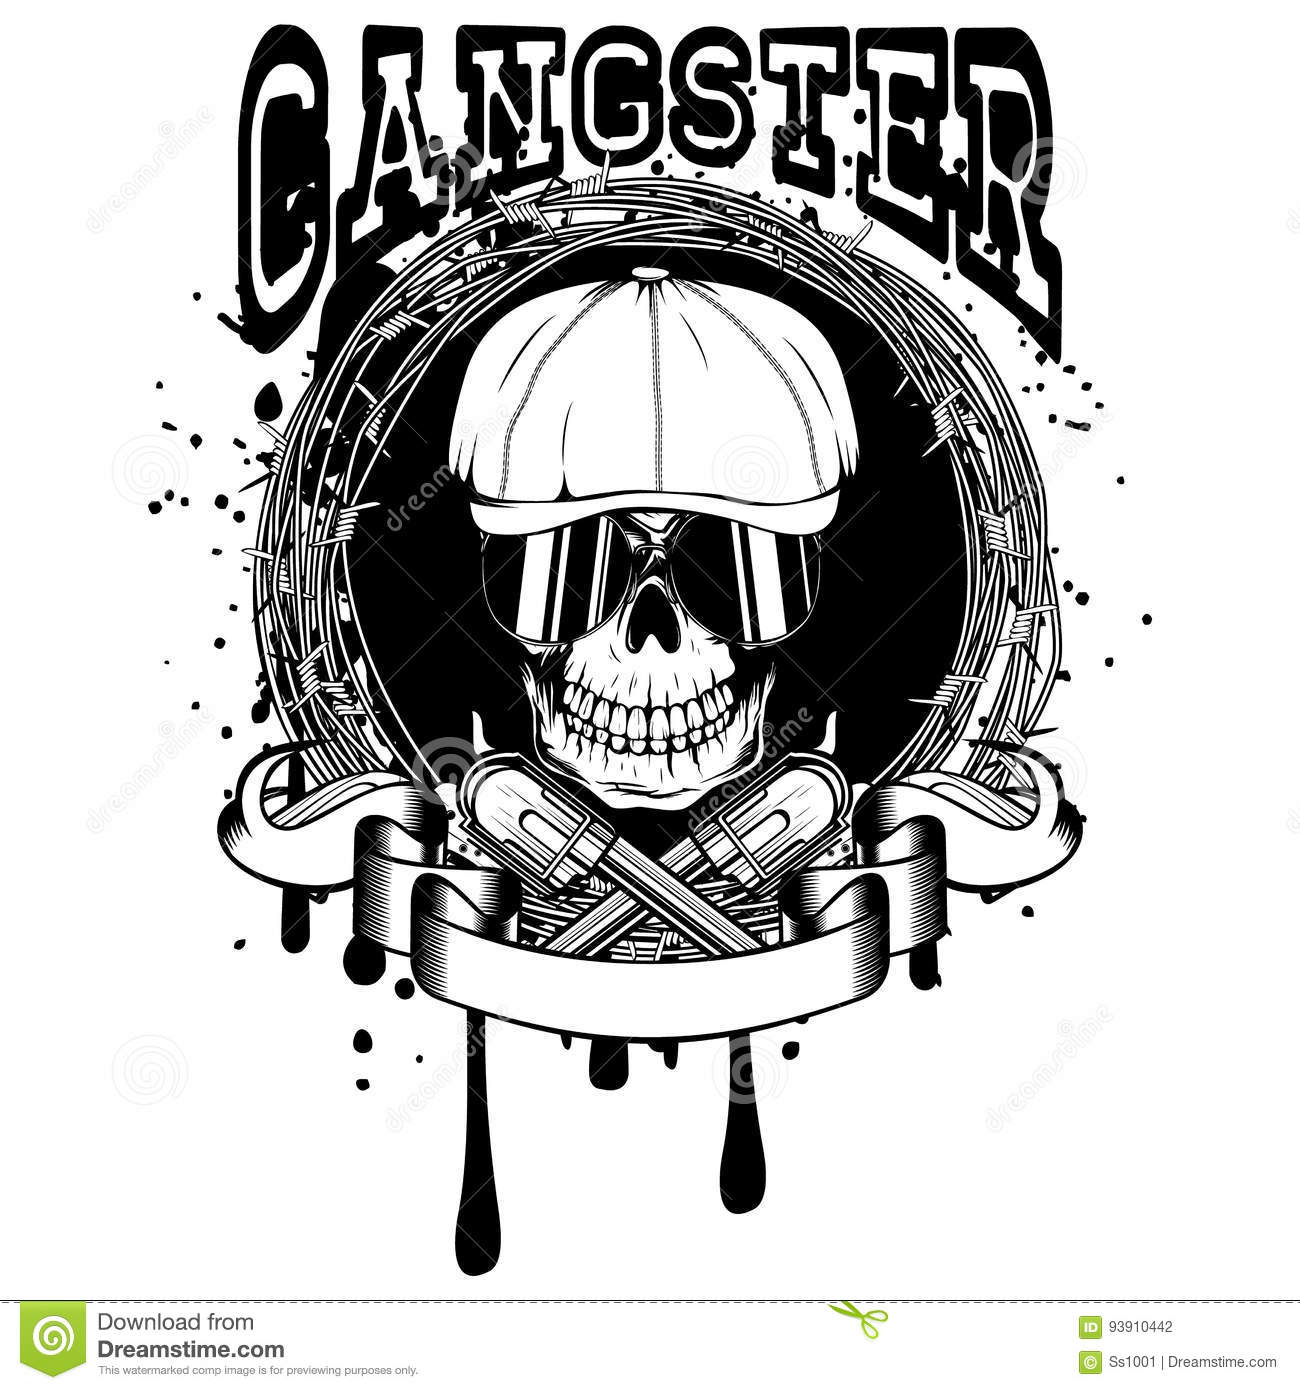 Gangster Tattoo Numbering Royalty Free Stock Image